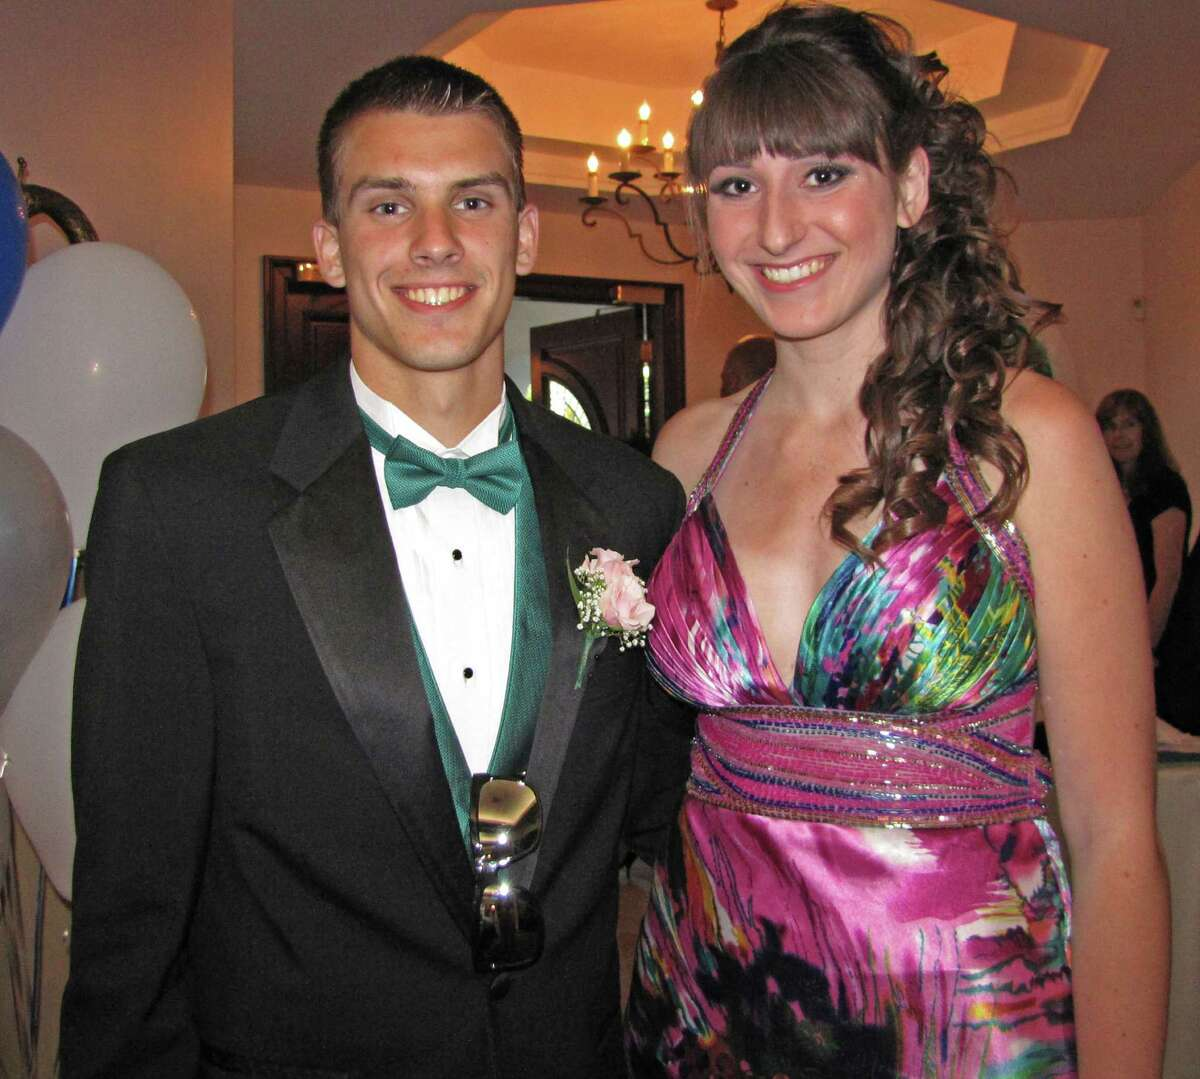 Were you seen at Shaker High School Senior Prom on May 18, 2012 at Birch Hill in Castleton-on-Hudson?